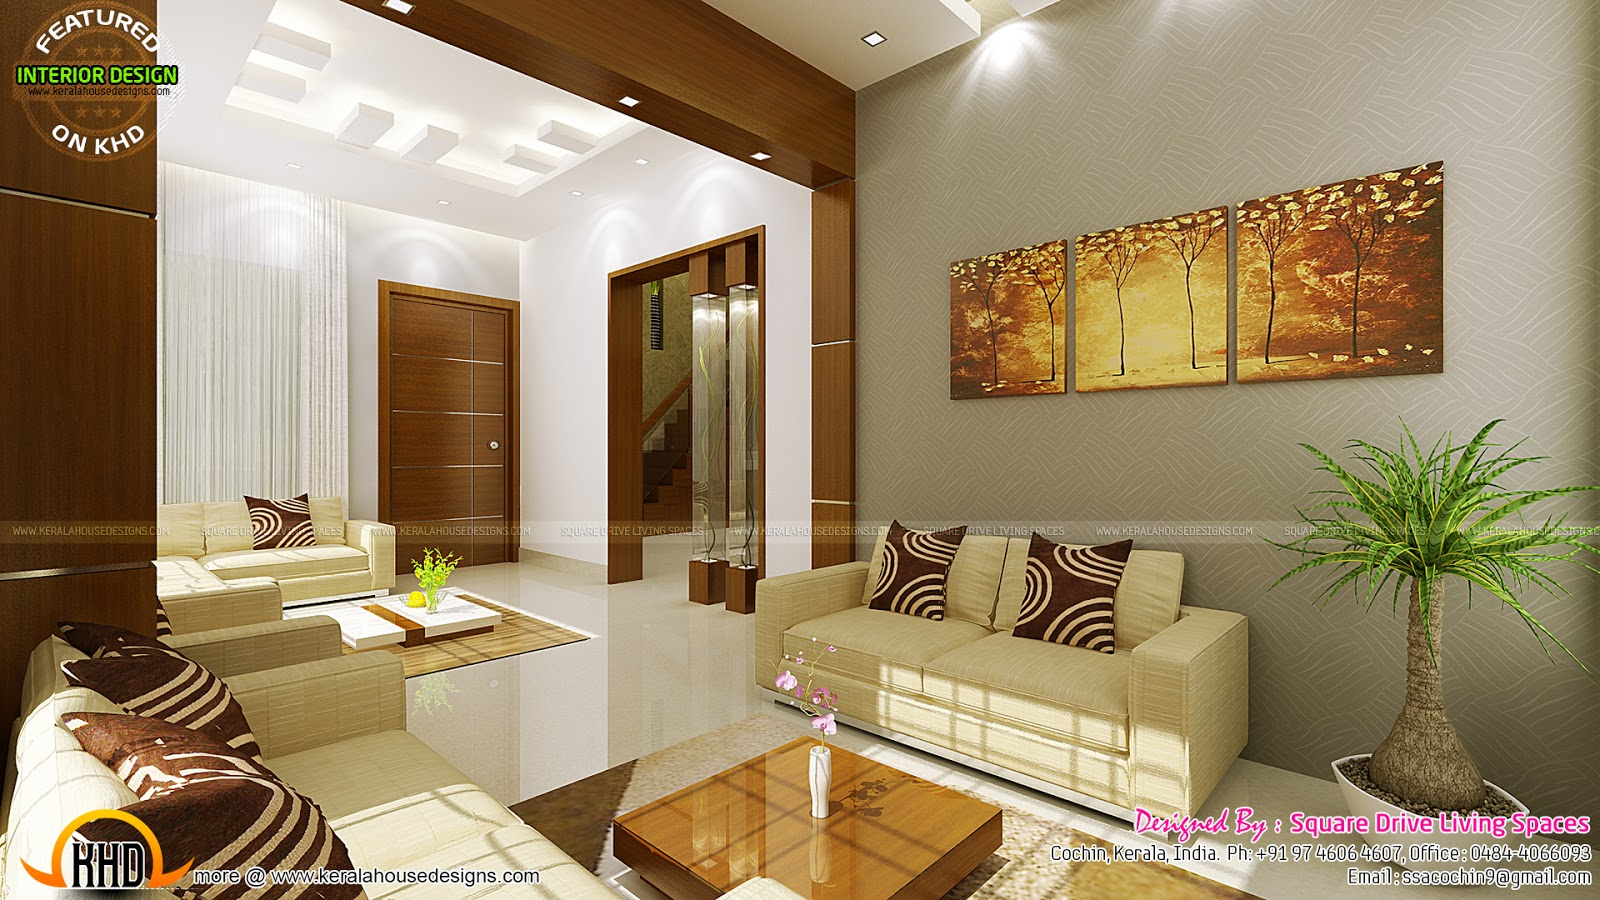 Contemporary kitchen dining and living room kerala home design and floor plans - Interiors design of small drowingroom ...